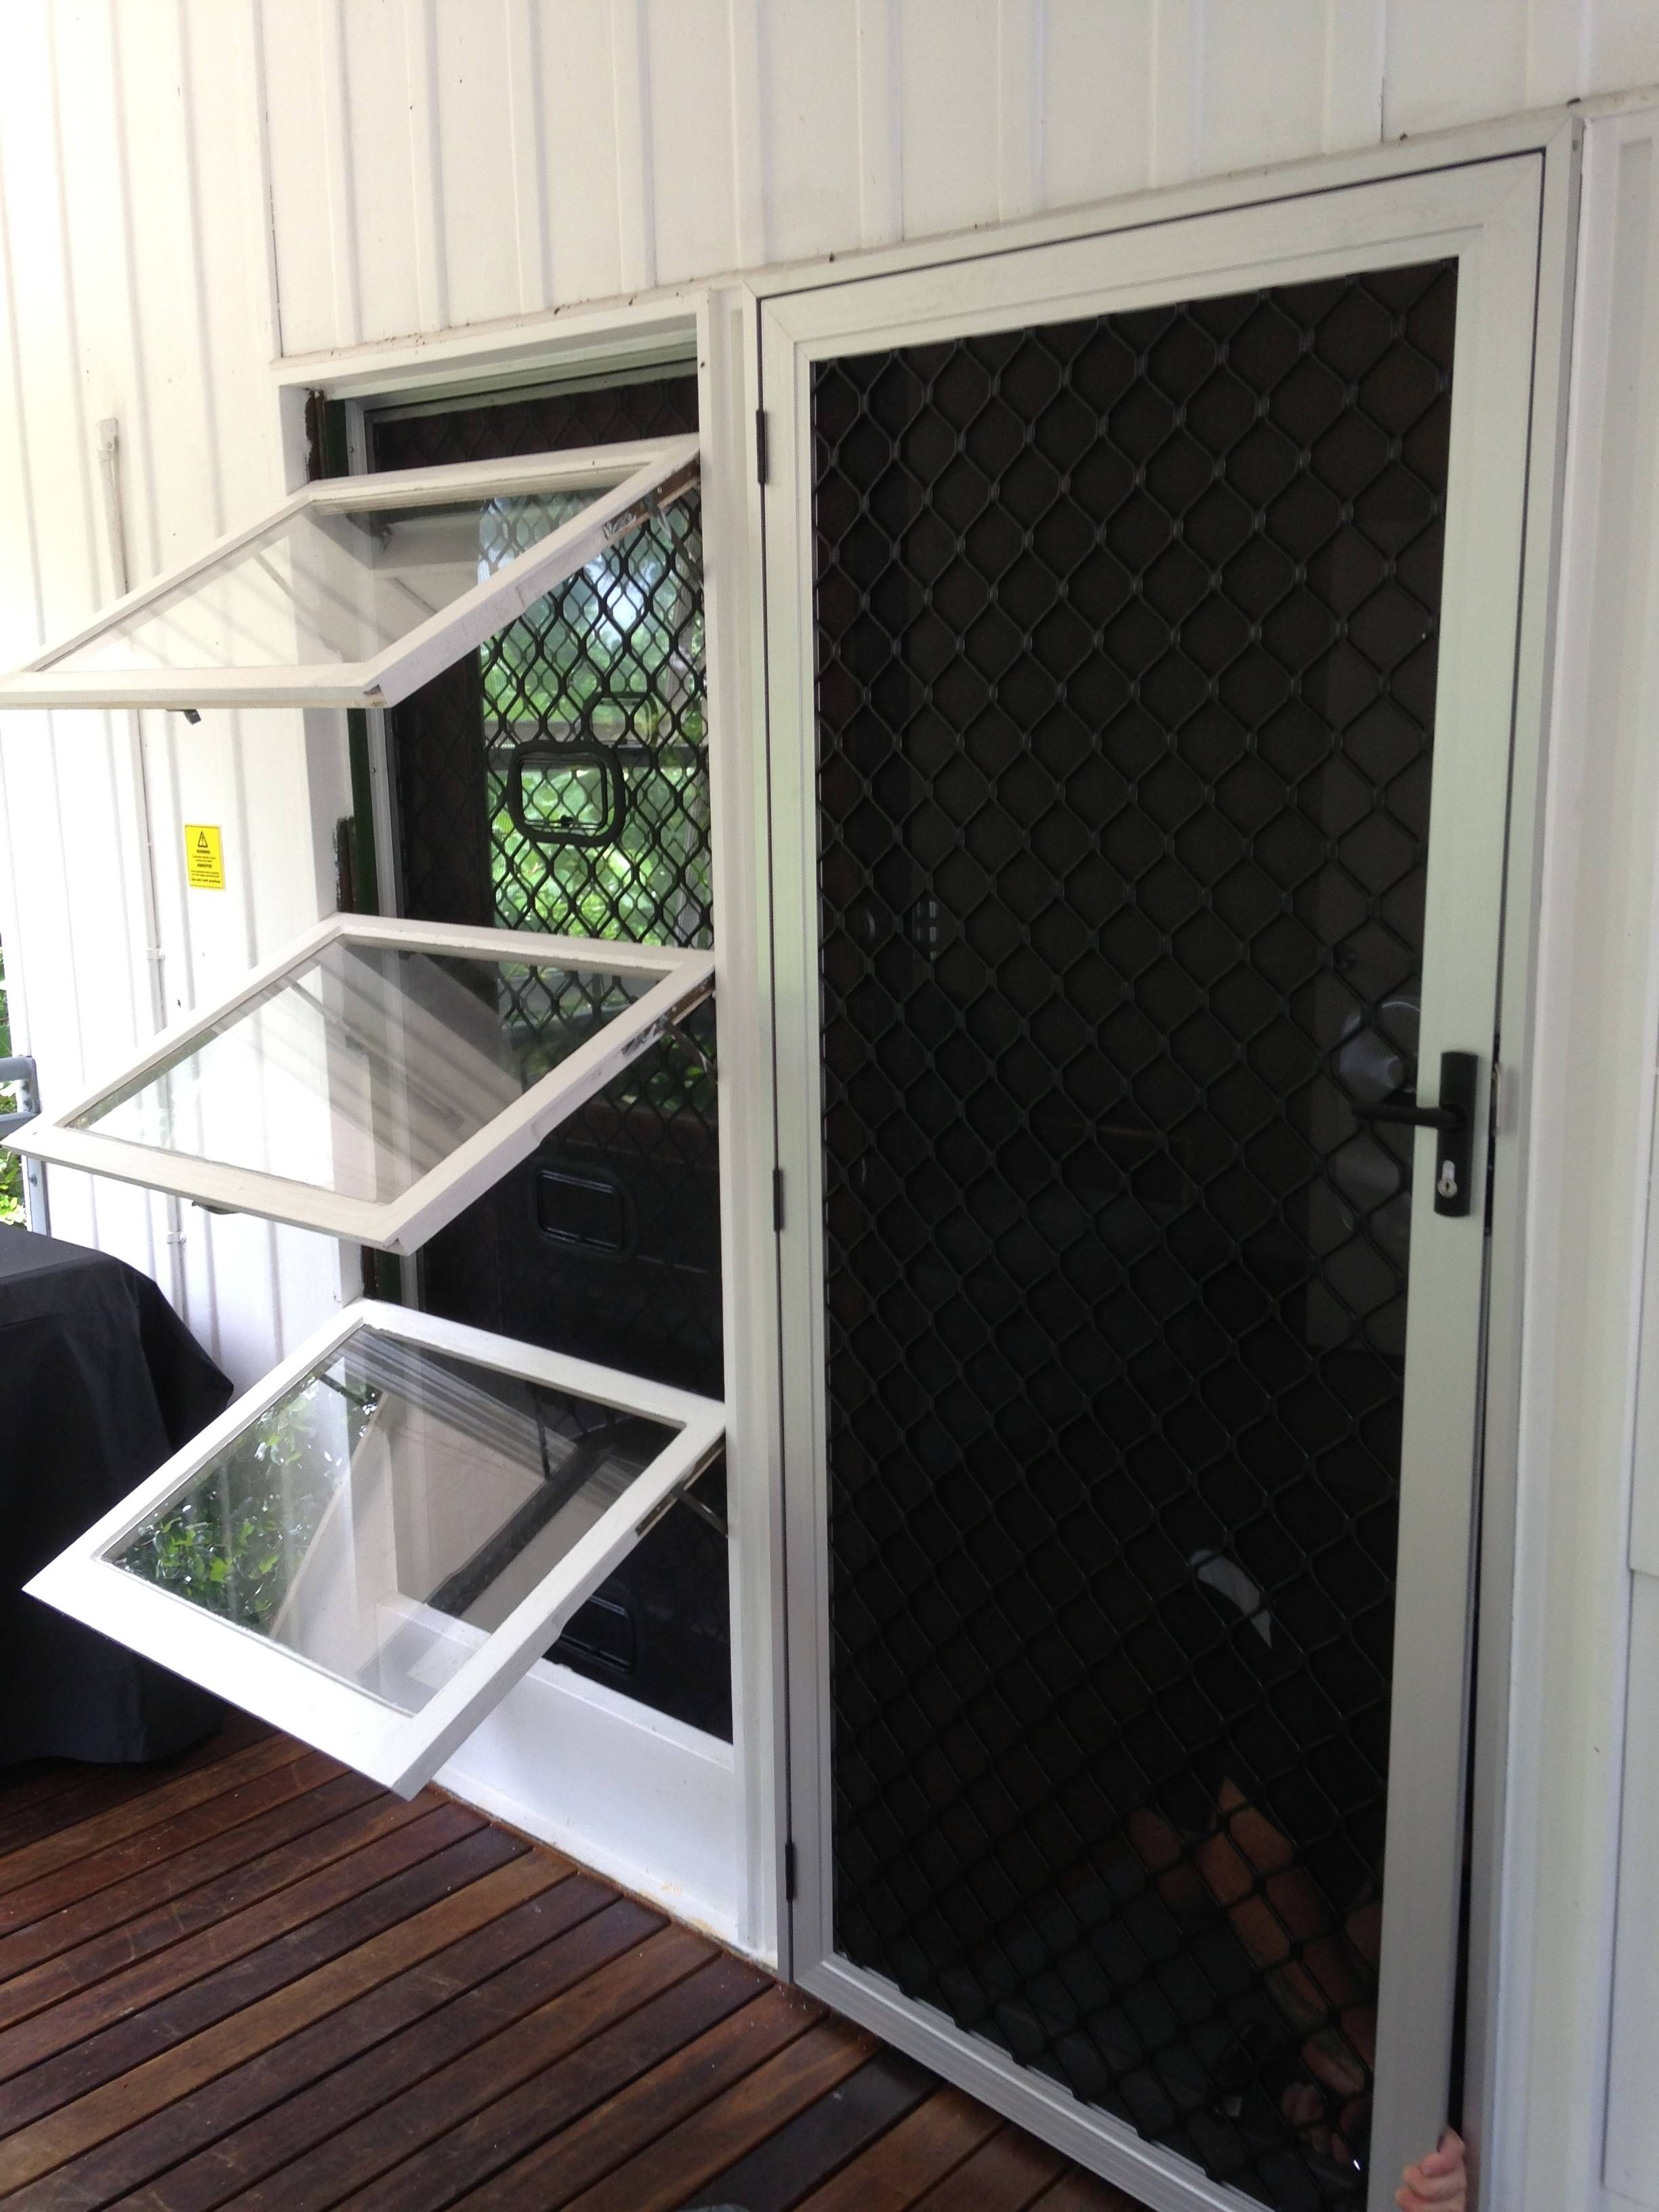 Push out Window Security Screen with Latch Access